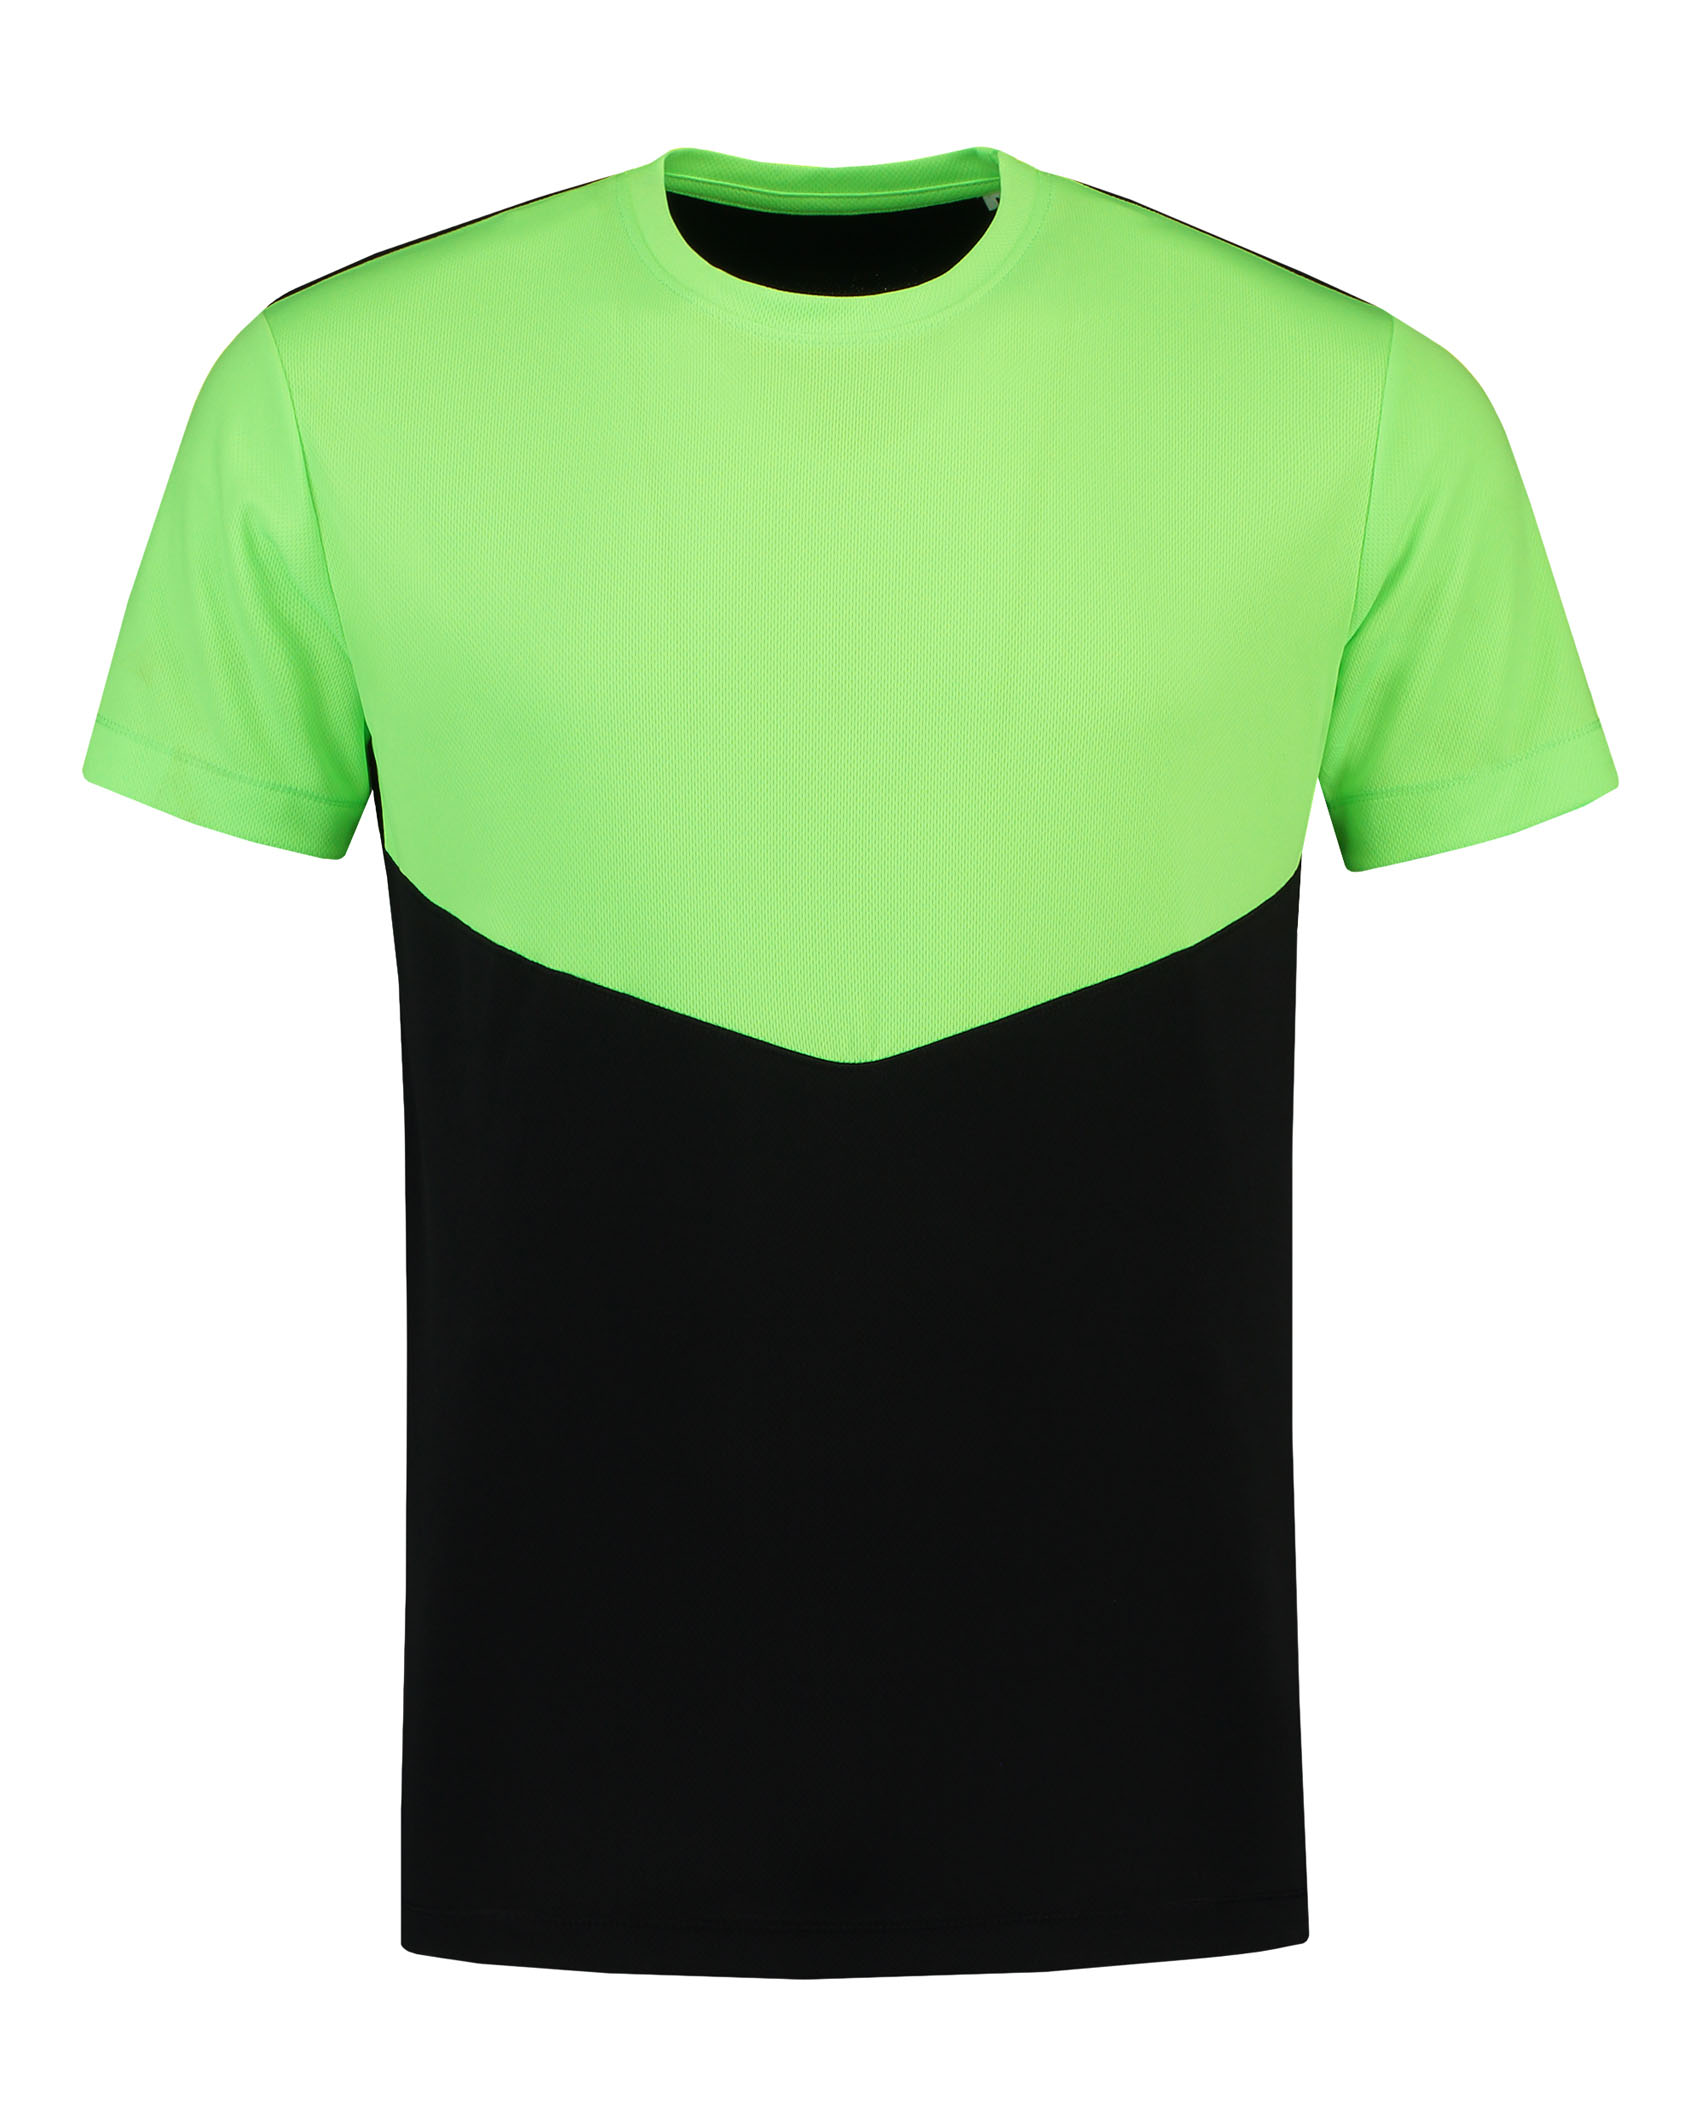 L&S T-shirt Contrast Sport SS for him